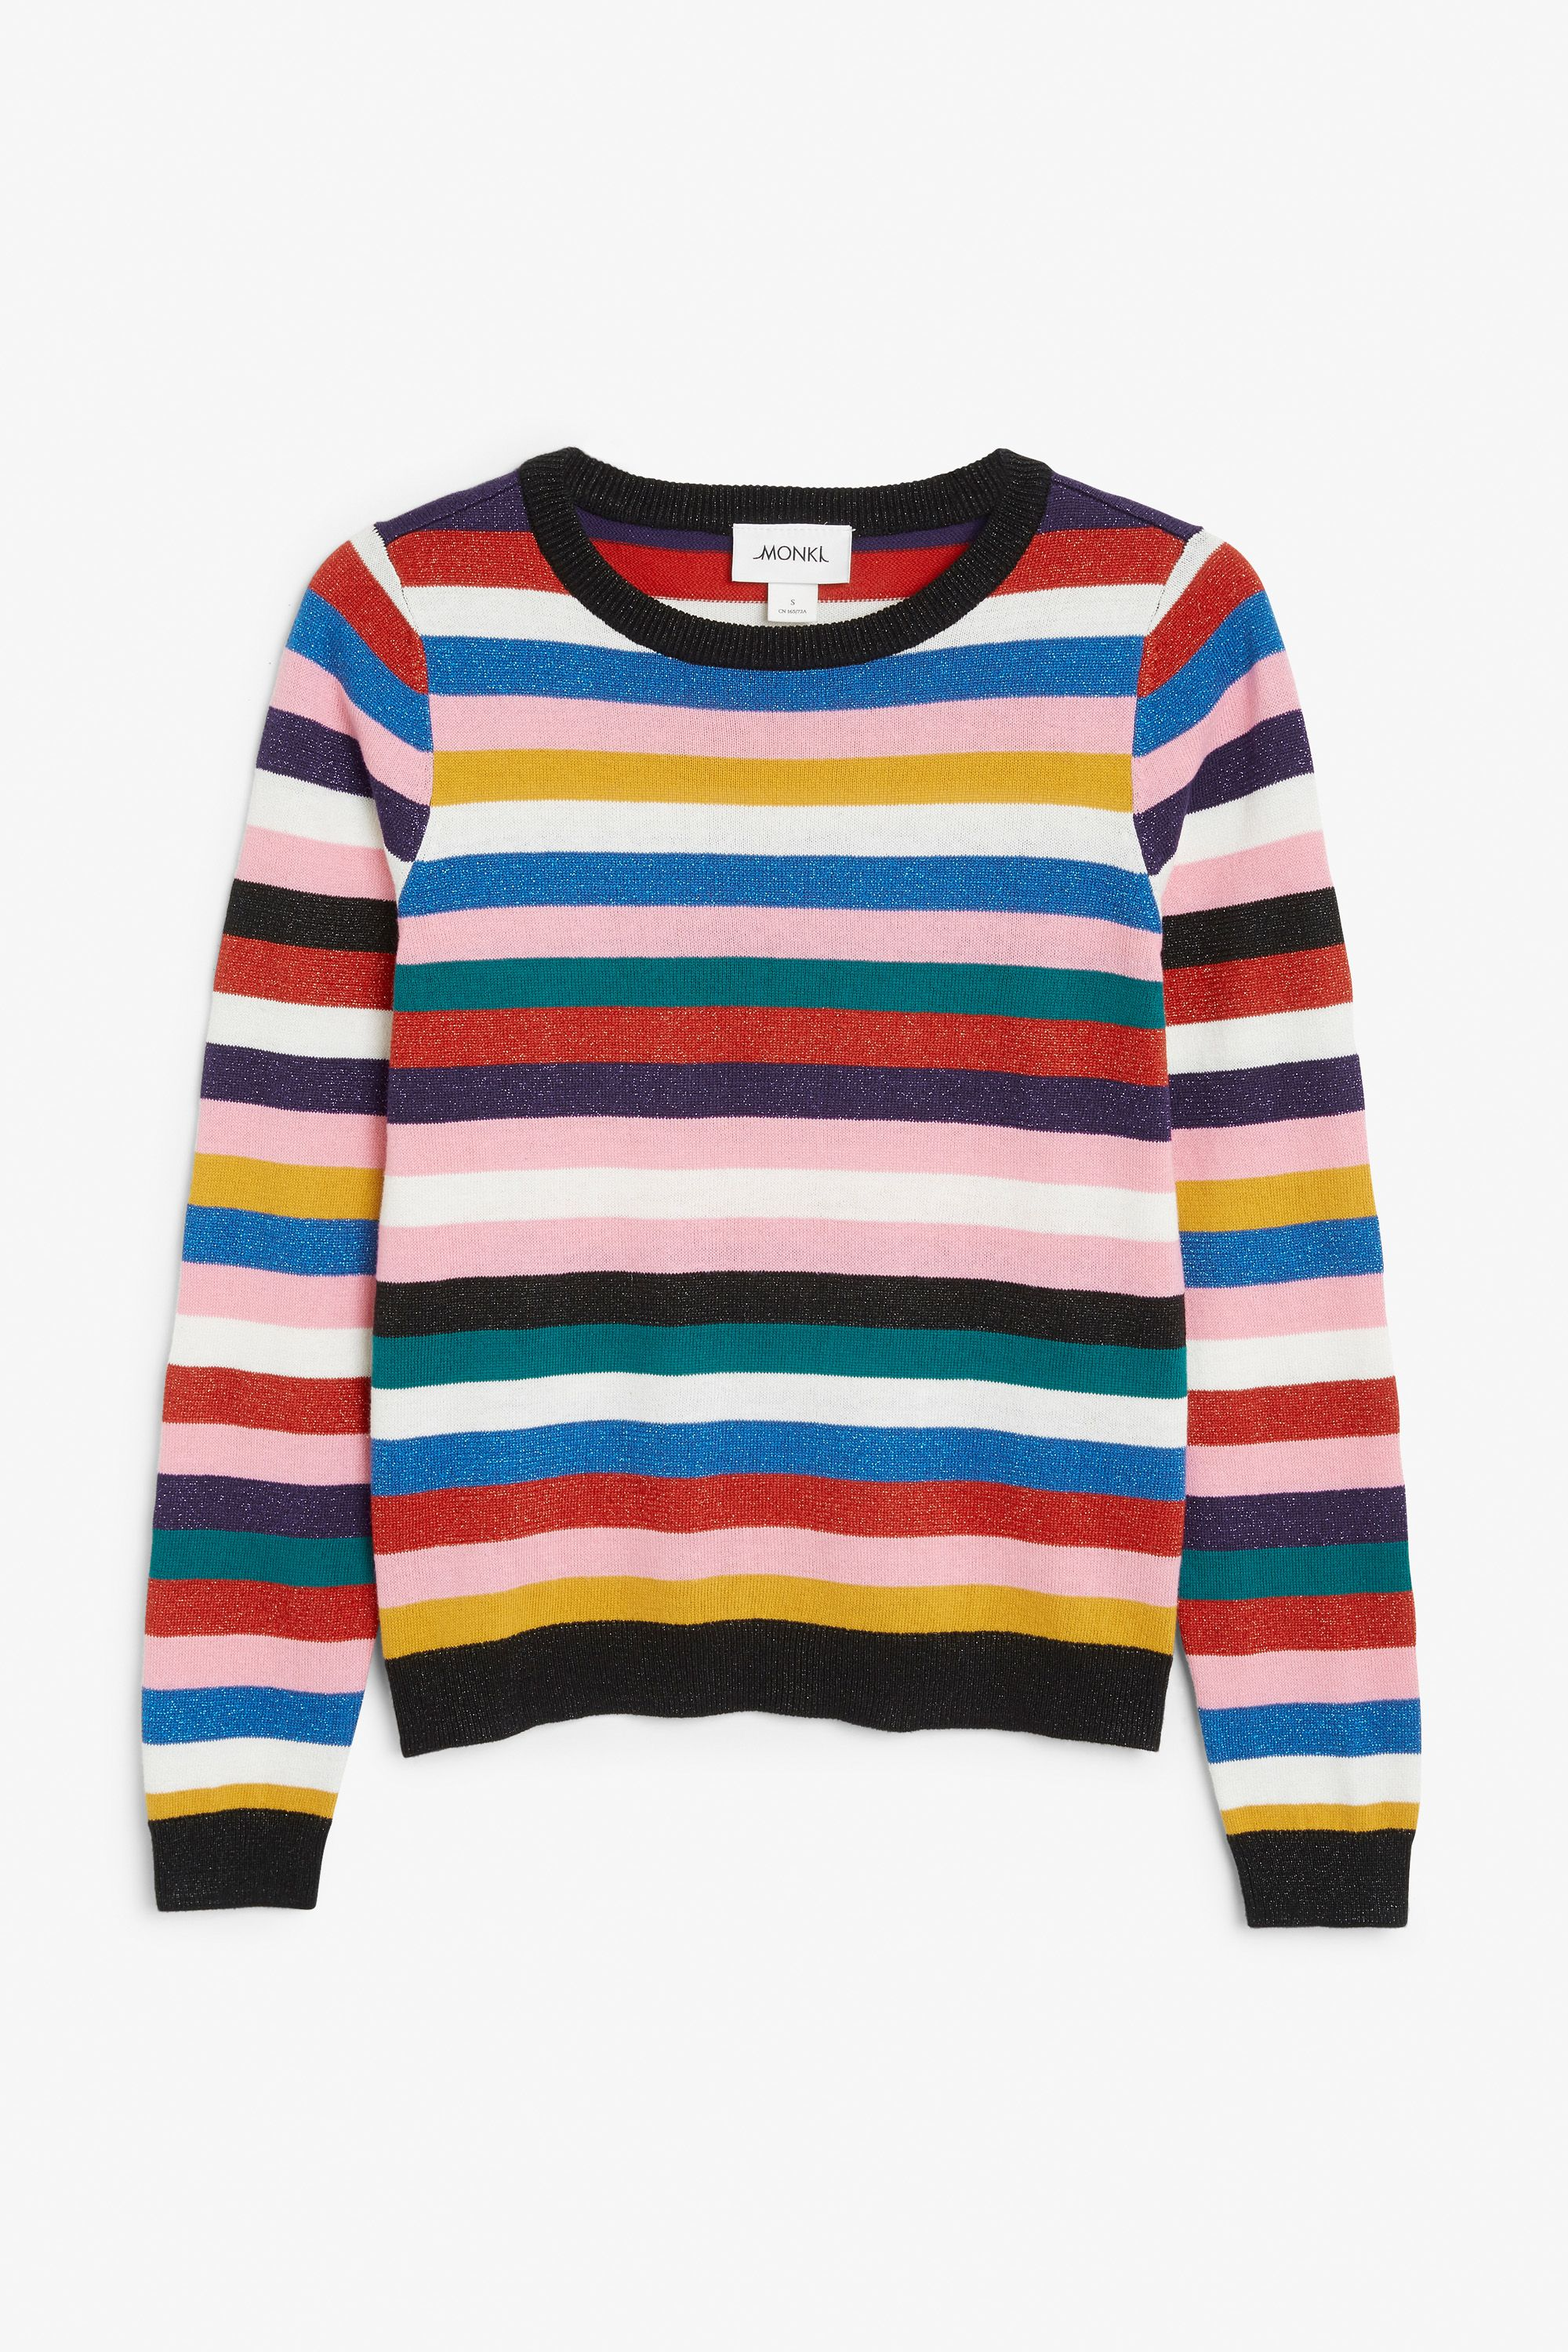 NEW! Glittery striped sweater | rad clothes | Pinterest | Monki ...